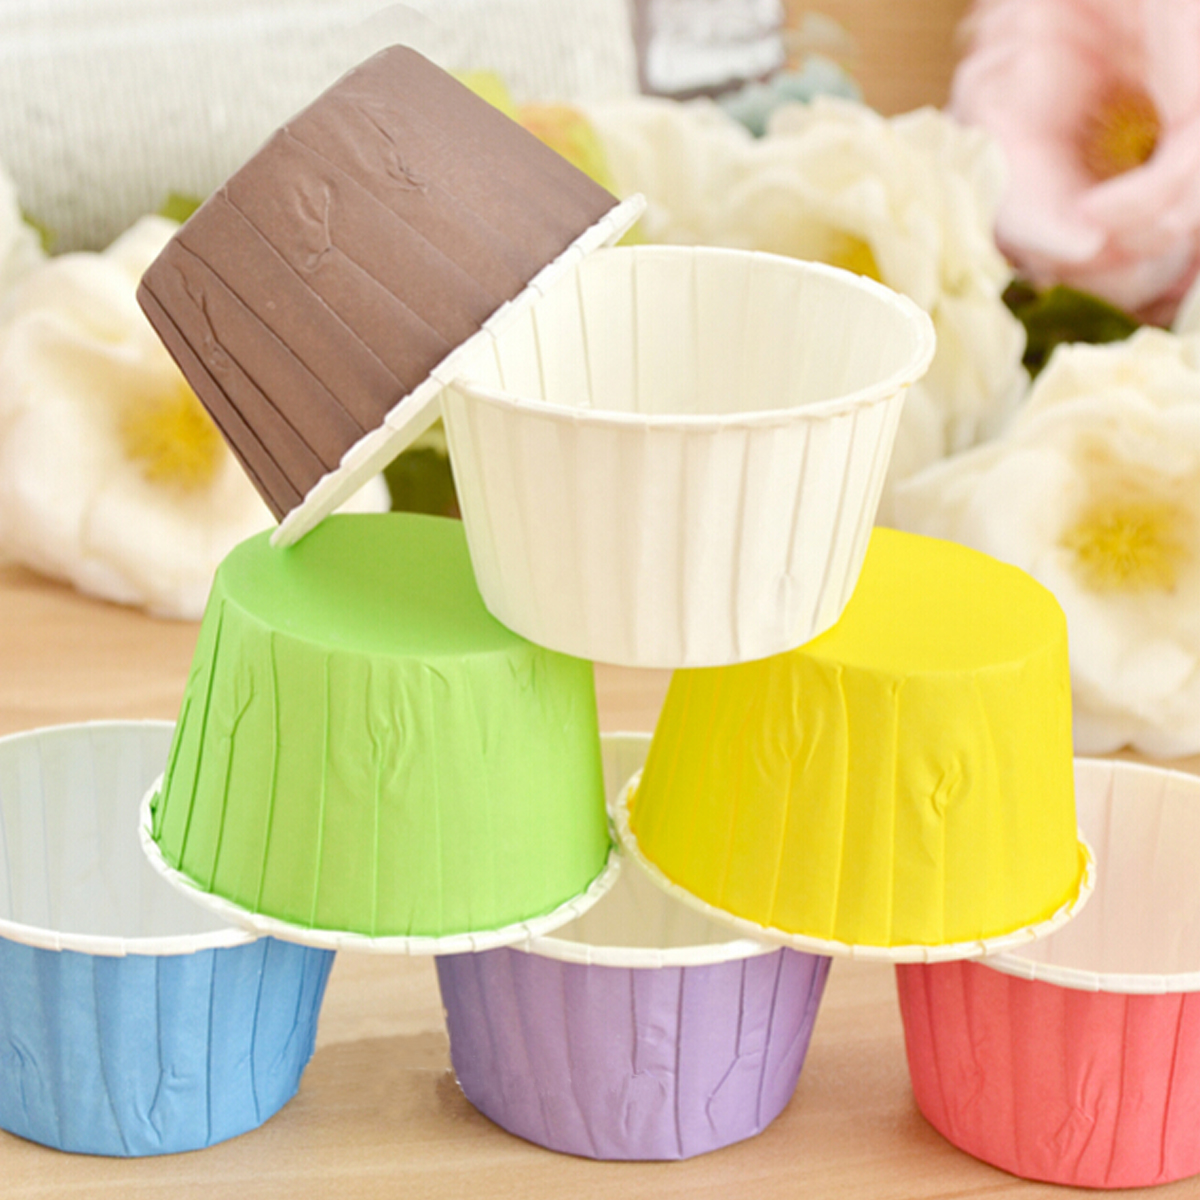 how to use paper baking cups